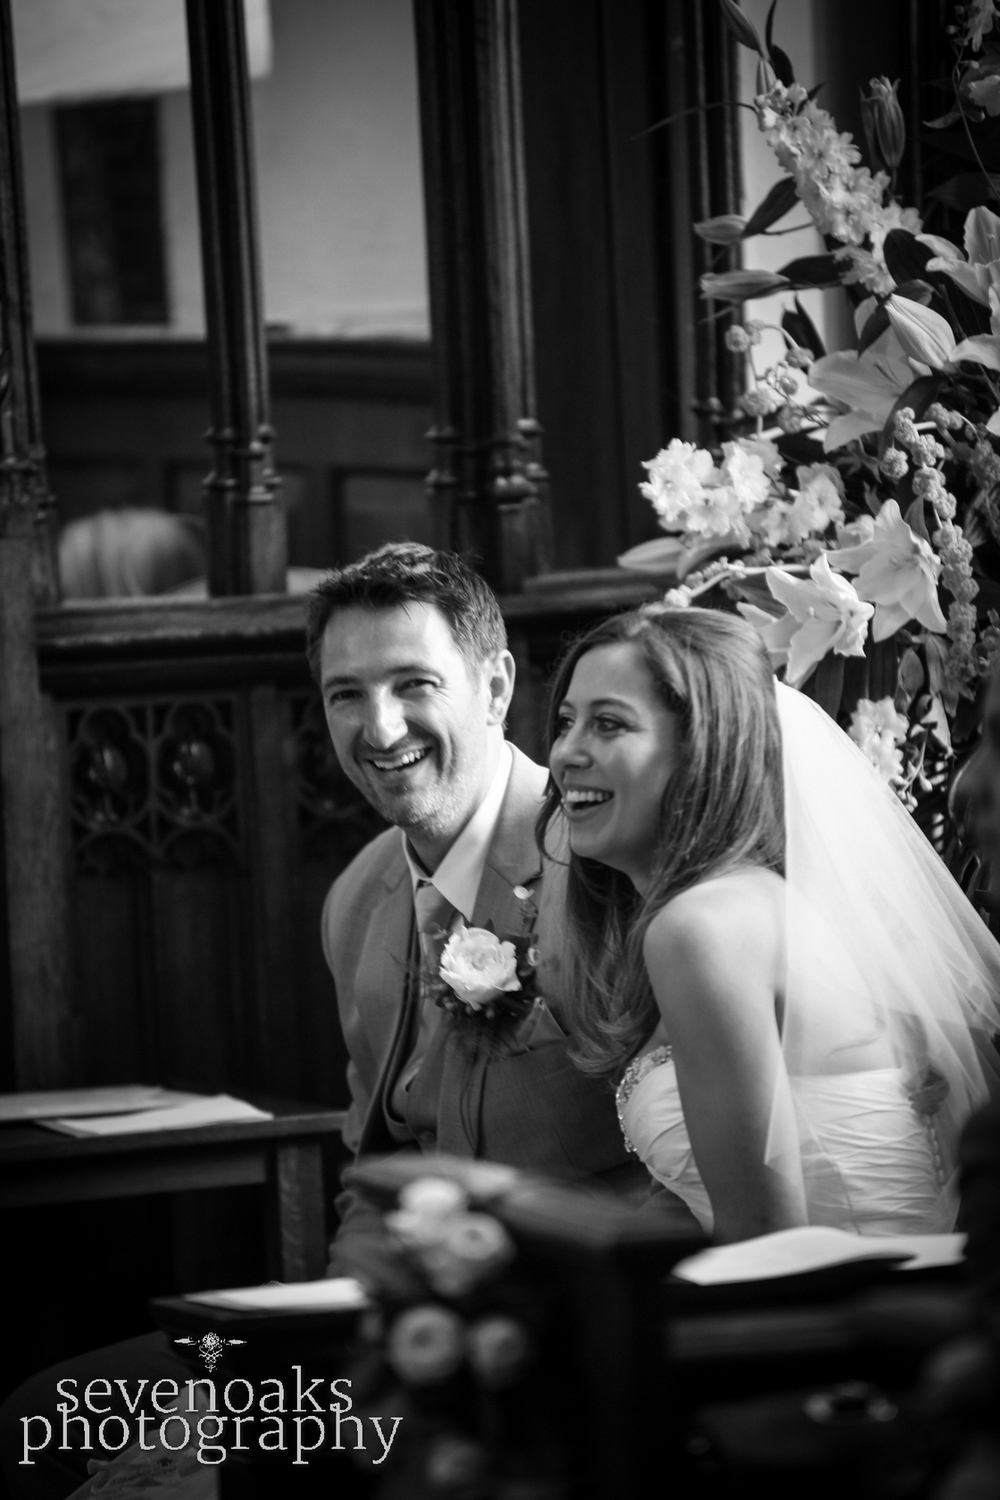 Sevenoaks documentary wedding photographer-97.jpg